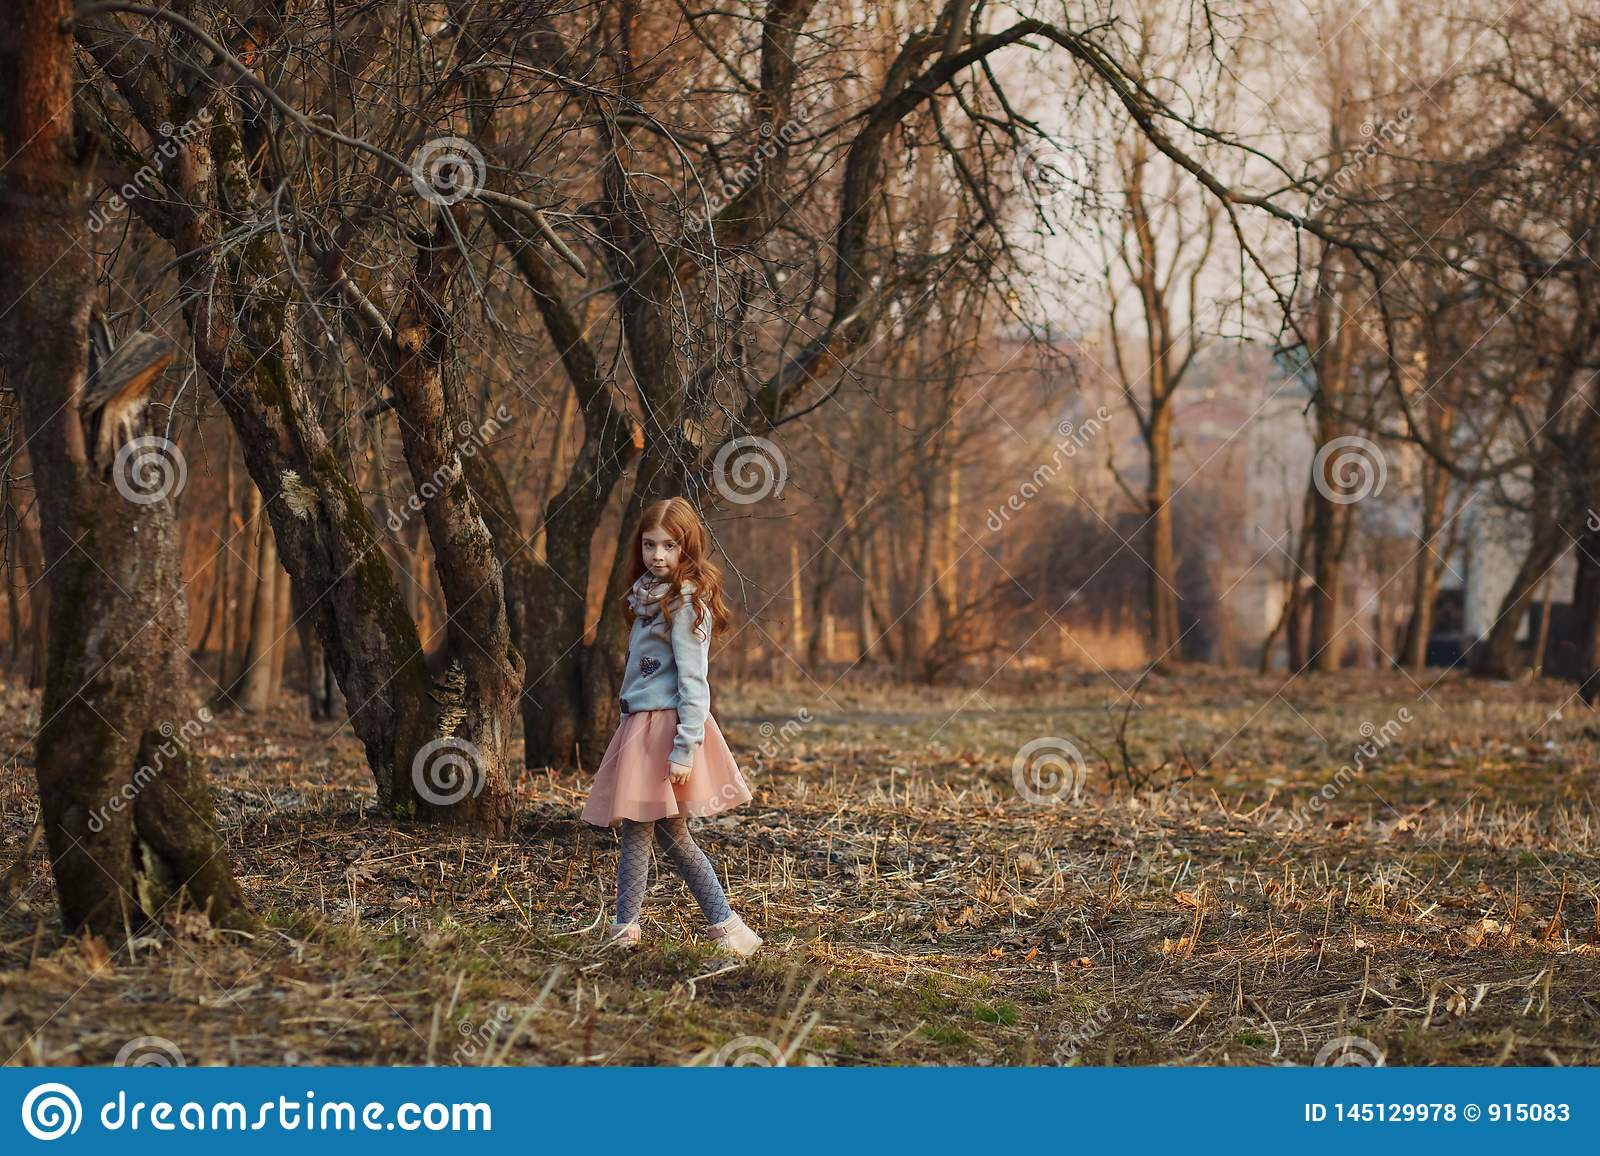 Red-haired girl with freckles in a park. Spring or Autumn. Happy carefree childhood